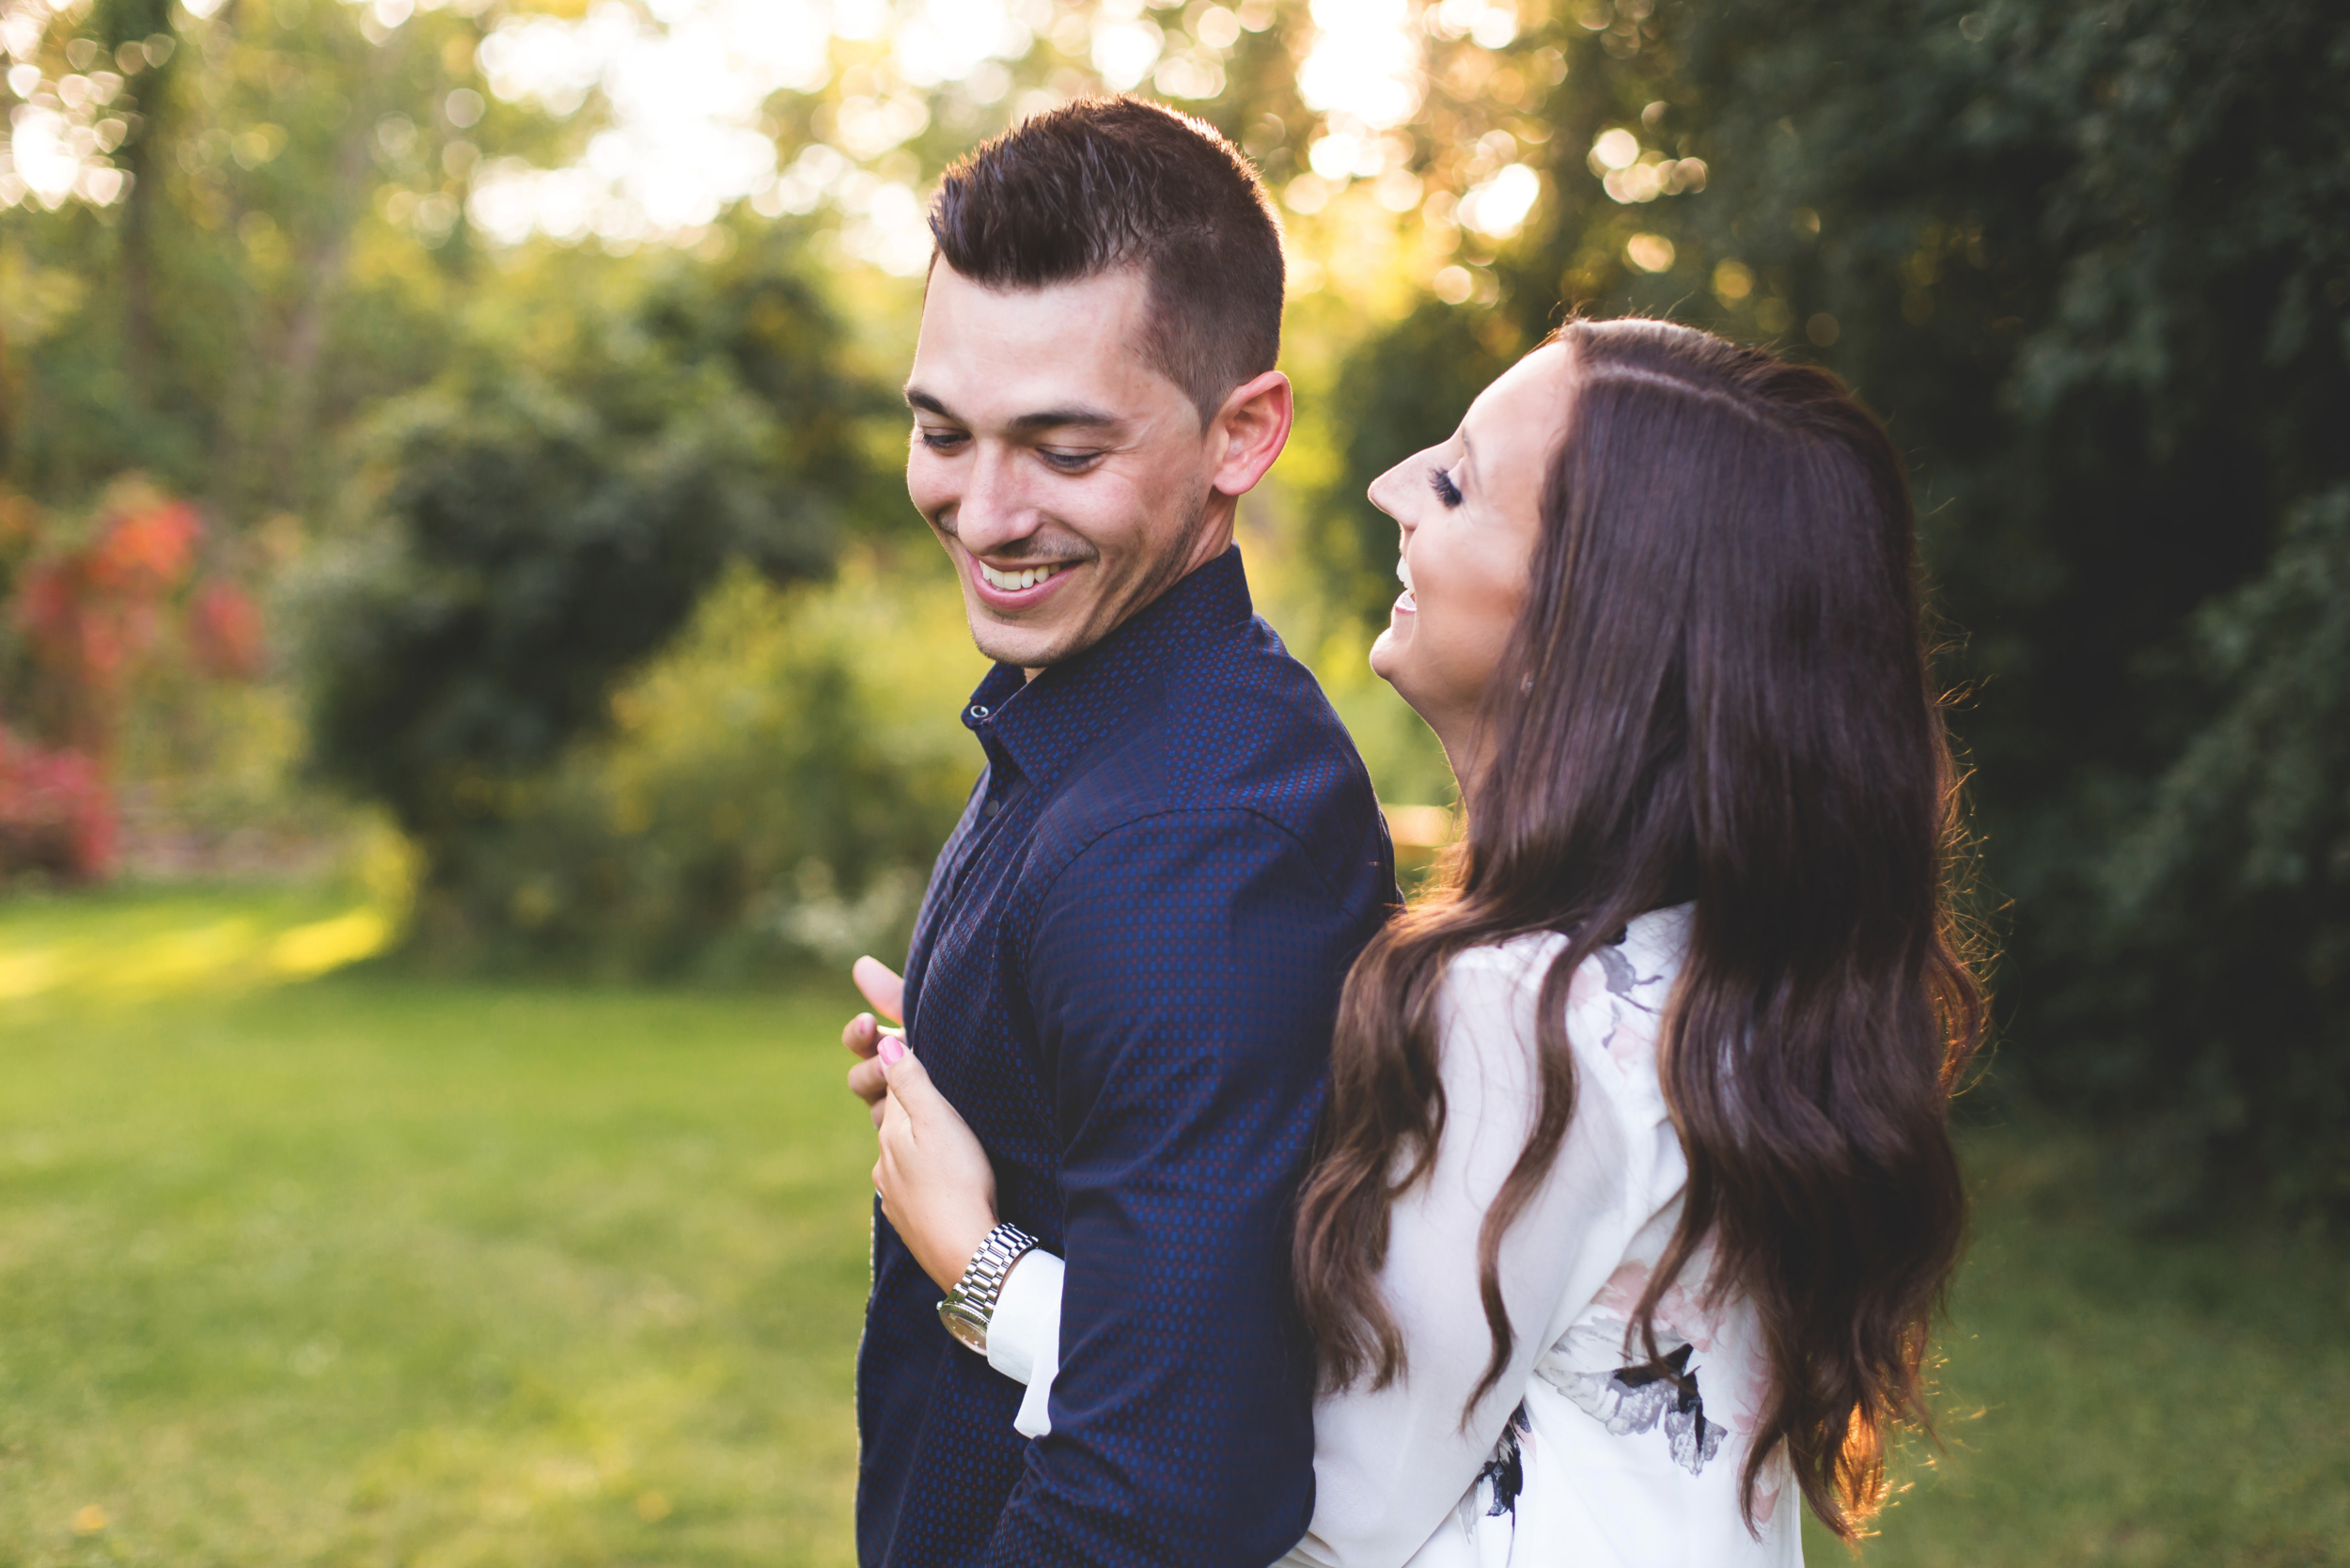 Engagement-Session-Hamilton-Burlington-Oakville-Toronto-Niagara-Wedding-Photographer-Engaged-Photography-Session-HamOnt-Moments-by-Lauren-Photo-Image-11.png